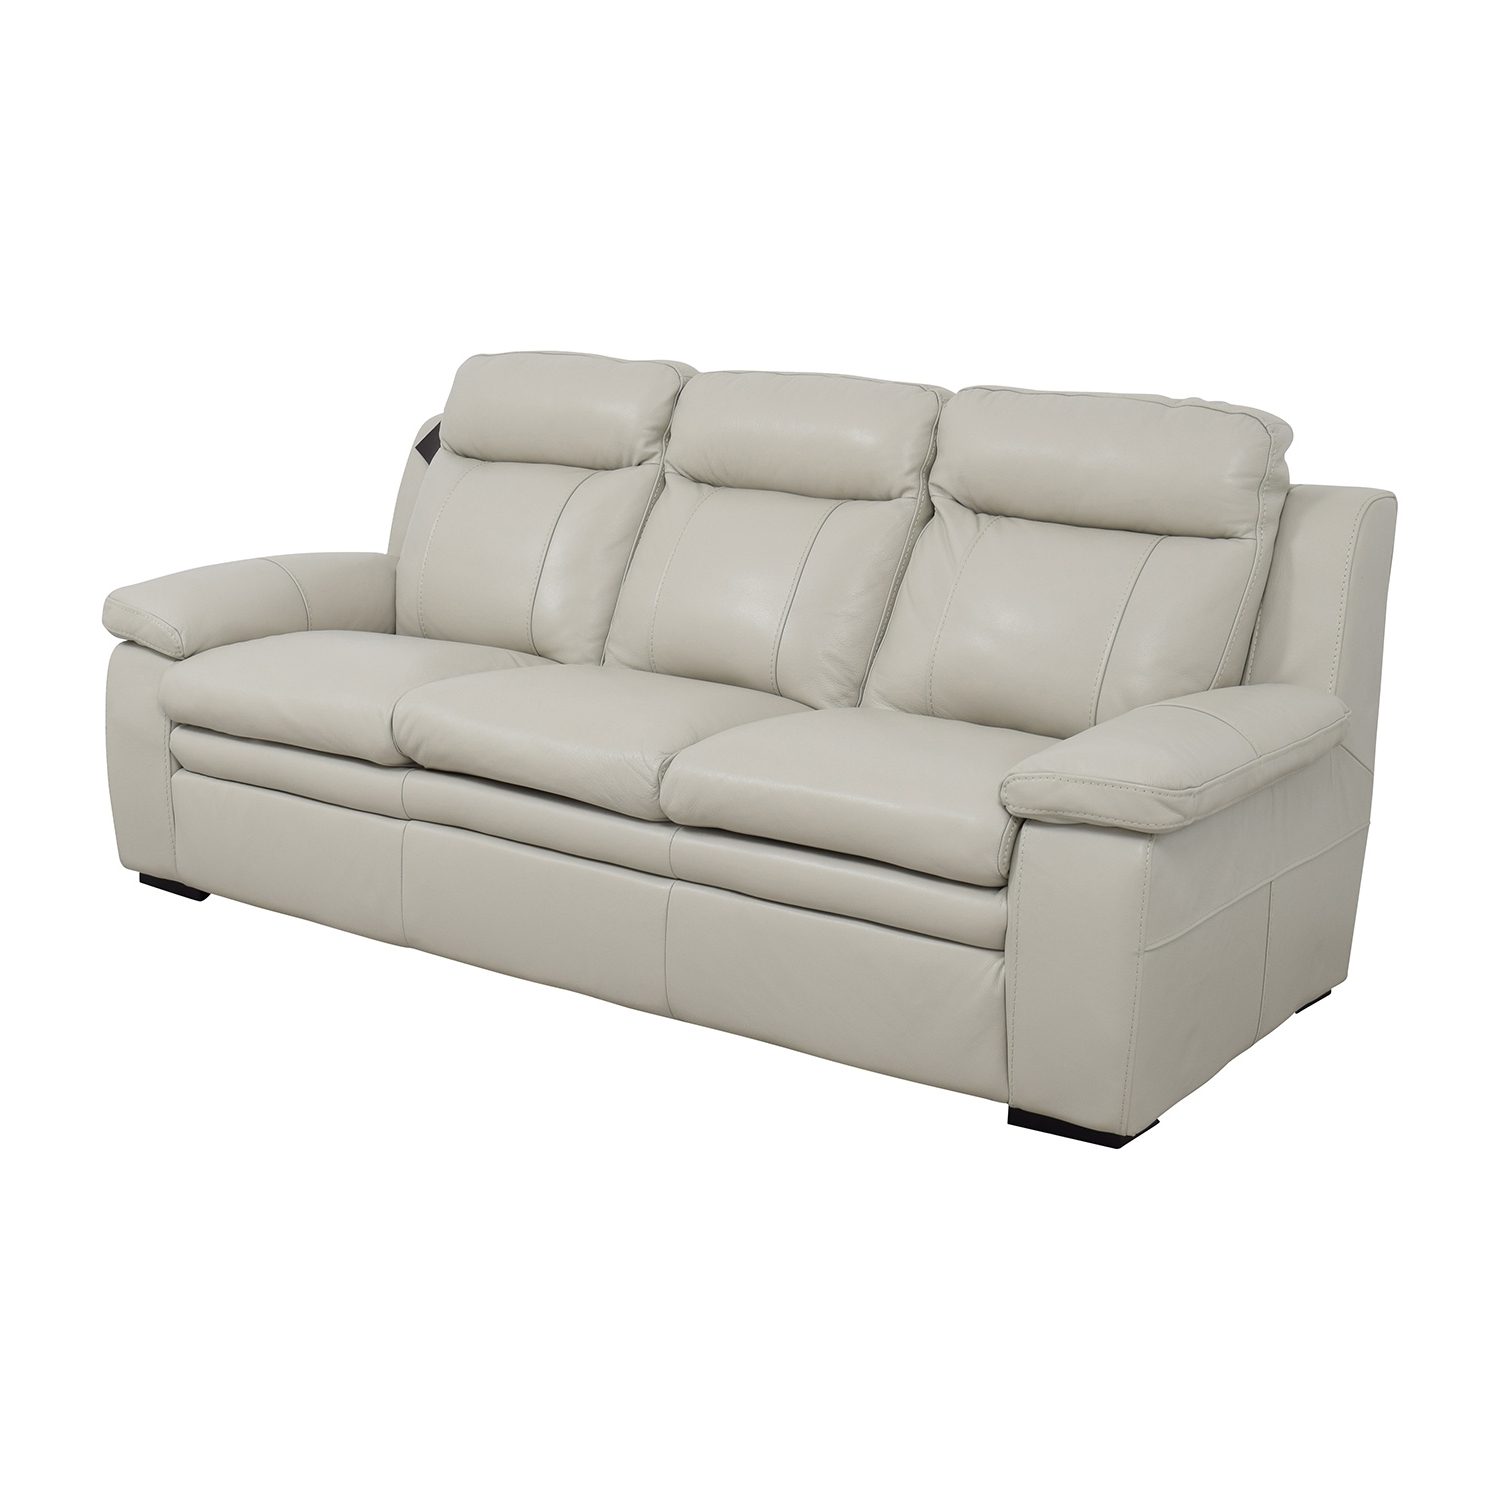 [%67% Off – Macy's Macy's Zane White Leather Sofa / Sofas Within Preferred Off White Leather Sofas|Off White Leather Sofas Throughout Well Known 67% Off – Macy's Macy's Zane White Leather Sofa / Sofas|Popular Off White Leather Sofas Inside 67% Off – Macy's Macy's Zane White Leather Sofa / Sofas|Most Popular 67% Off – Macy's Macy's Zane White Leather Sofa / Sofas Within Off White Leather Sofas%] (View 1 of 20)